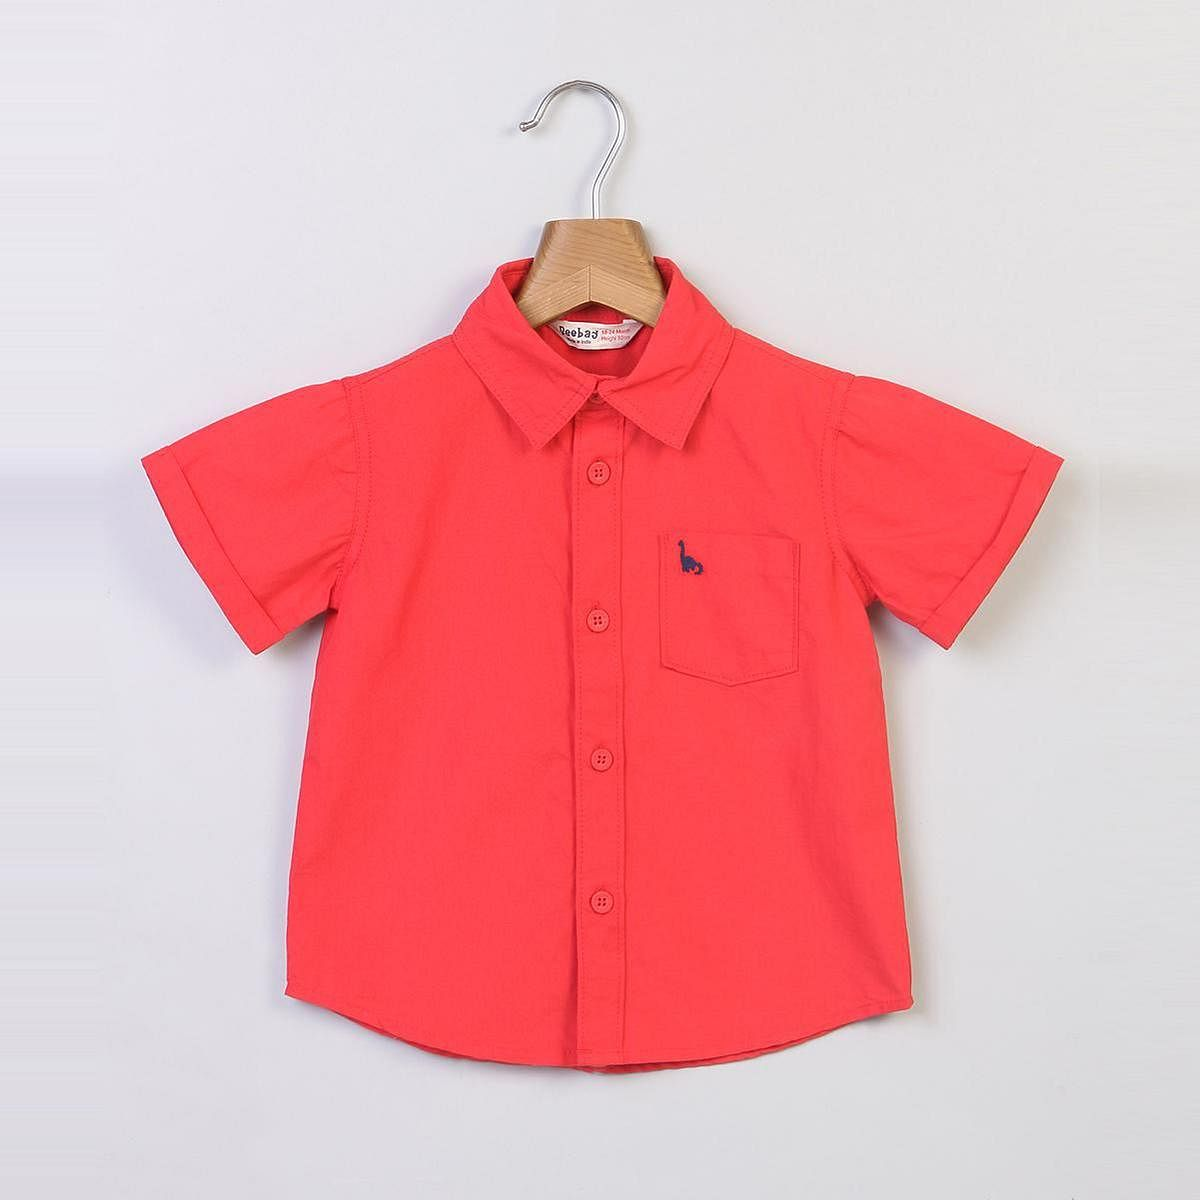 Beebay Red Shirt With Dino Pocket Embroidery For Infants